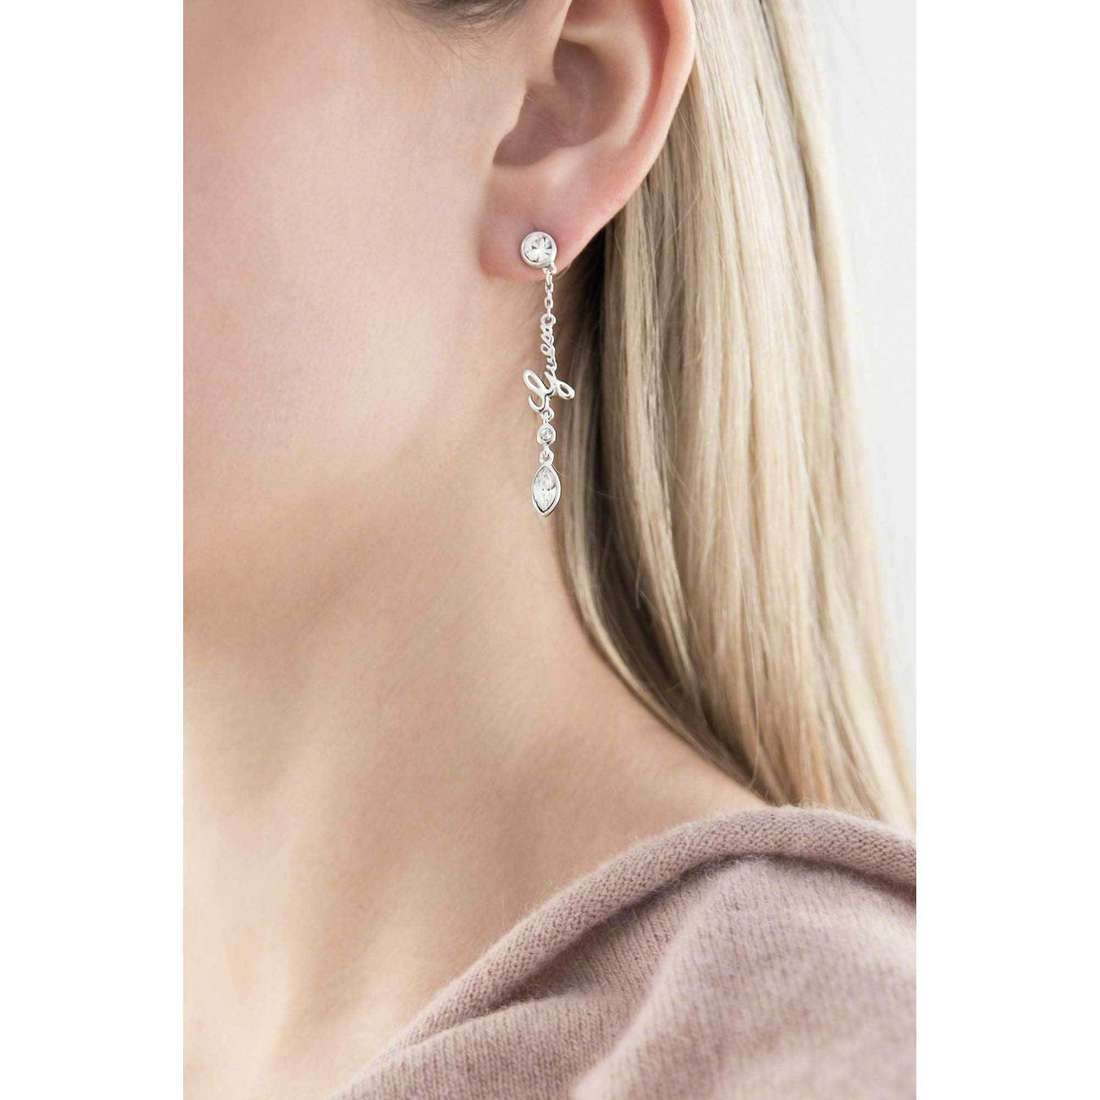 Guess boucles d'oreille Shiny Guess femme UBE61016 indosso